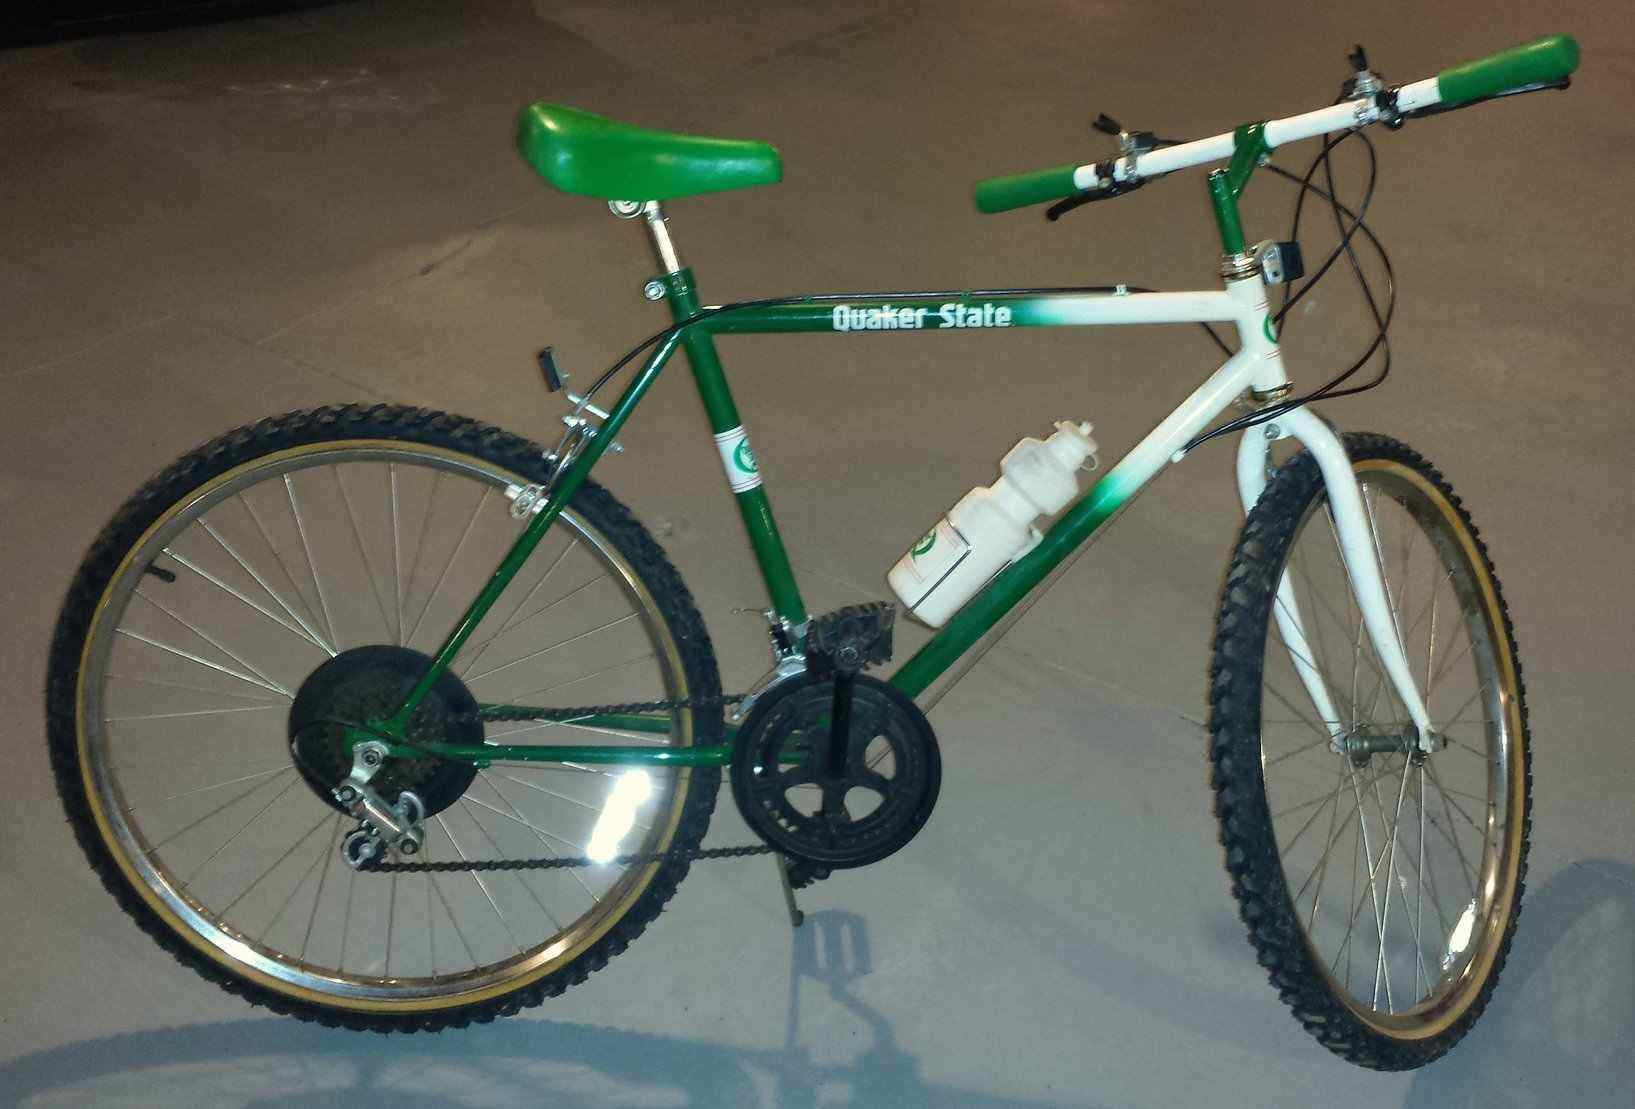 Attached picture rsz_1991_quaker_state_give_away_bike-1.jpg